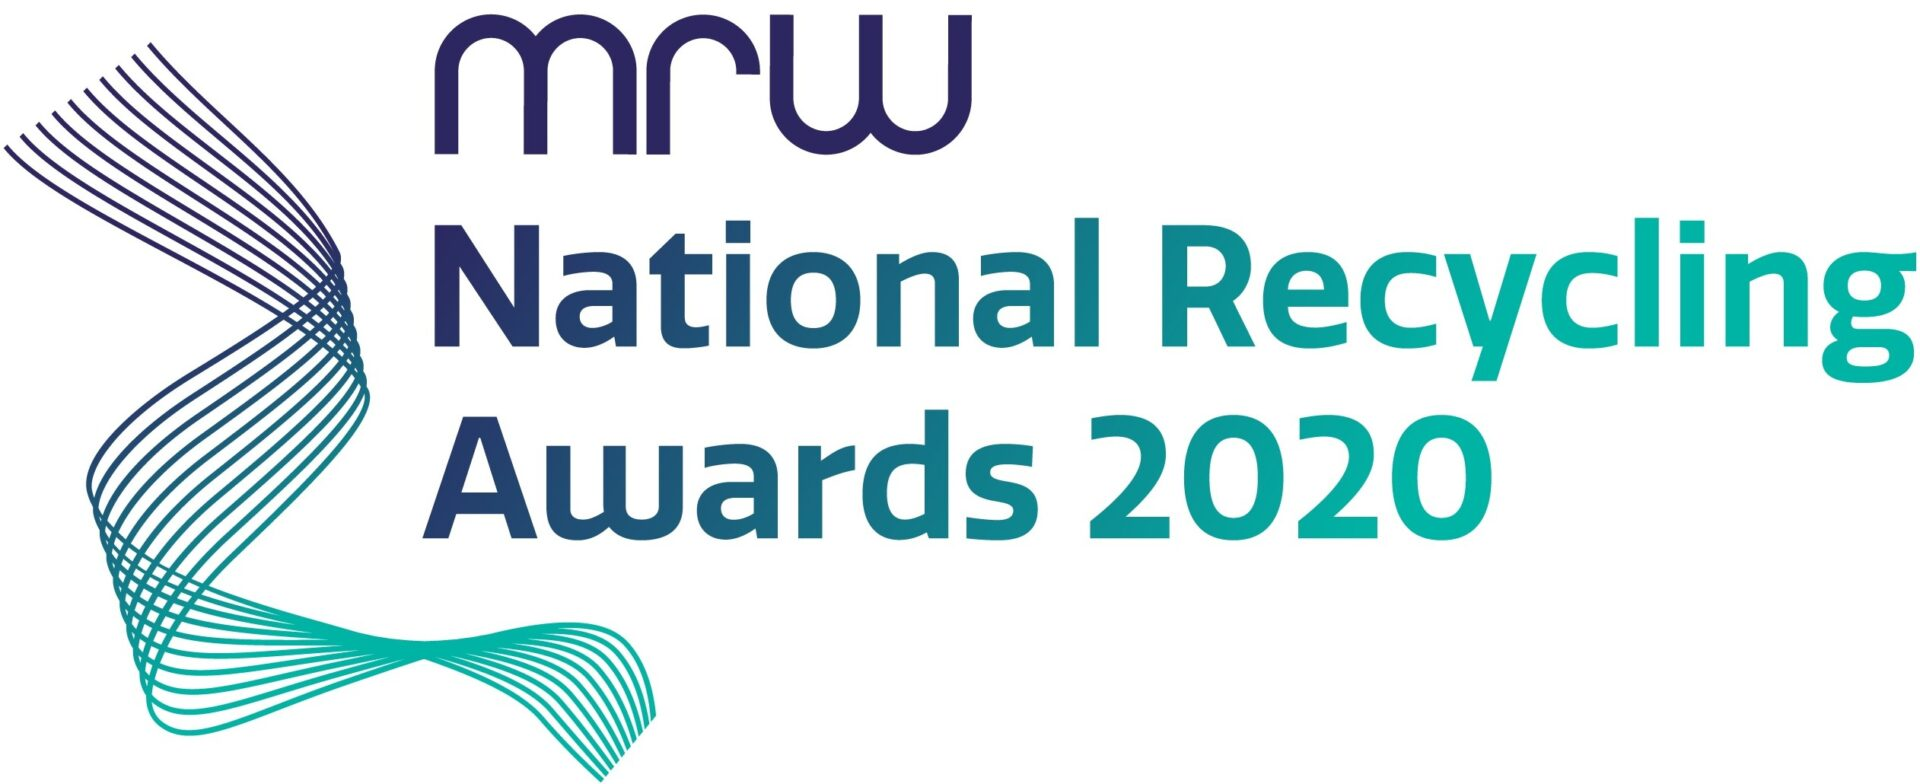 We are delighted to be shortlisted for the National Recycling Awards 2020